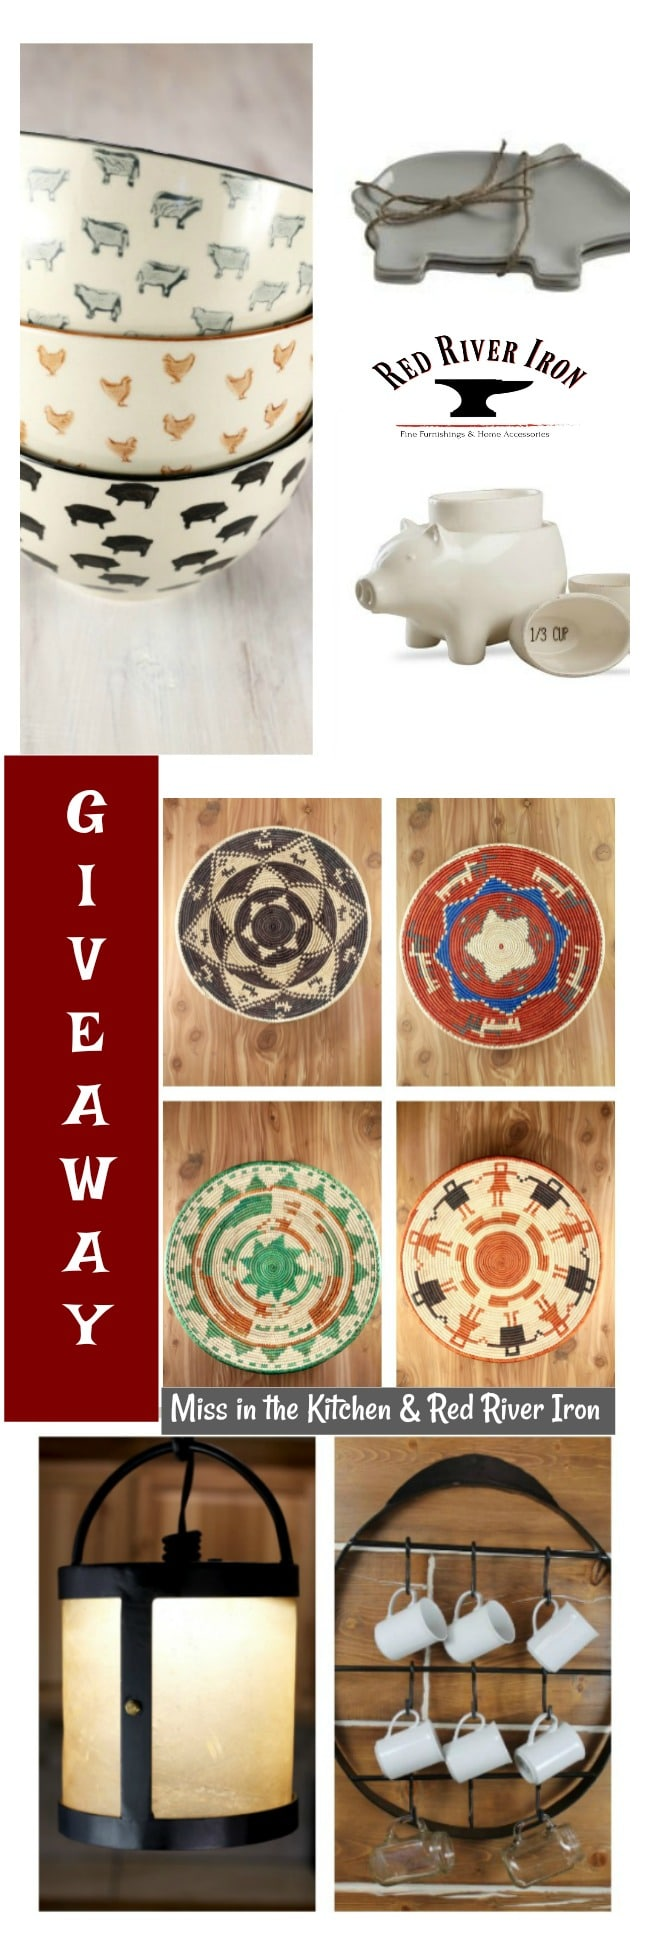 Giveaway for $100 Gift Card to RedRiverIron.com from missinthekitchen.com #sweepstakes #giveaway #christmas